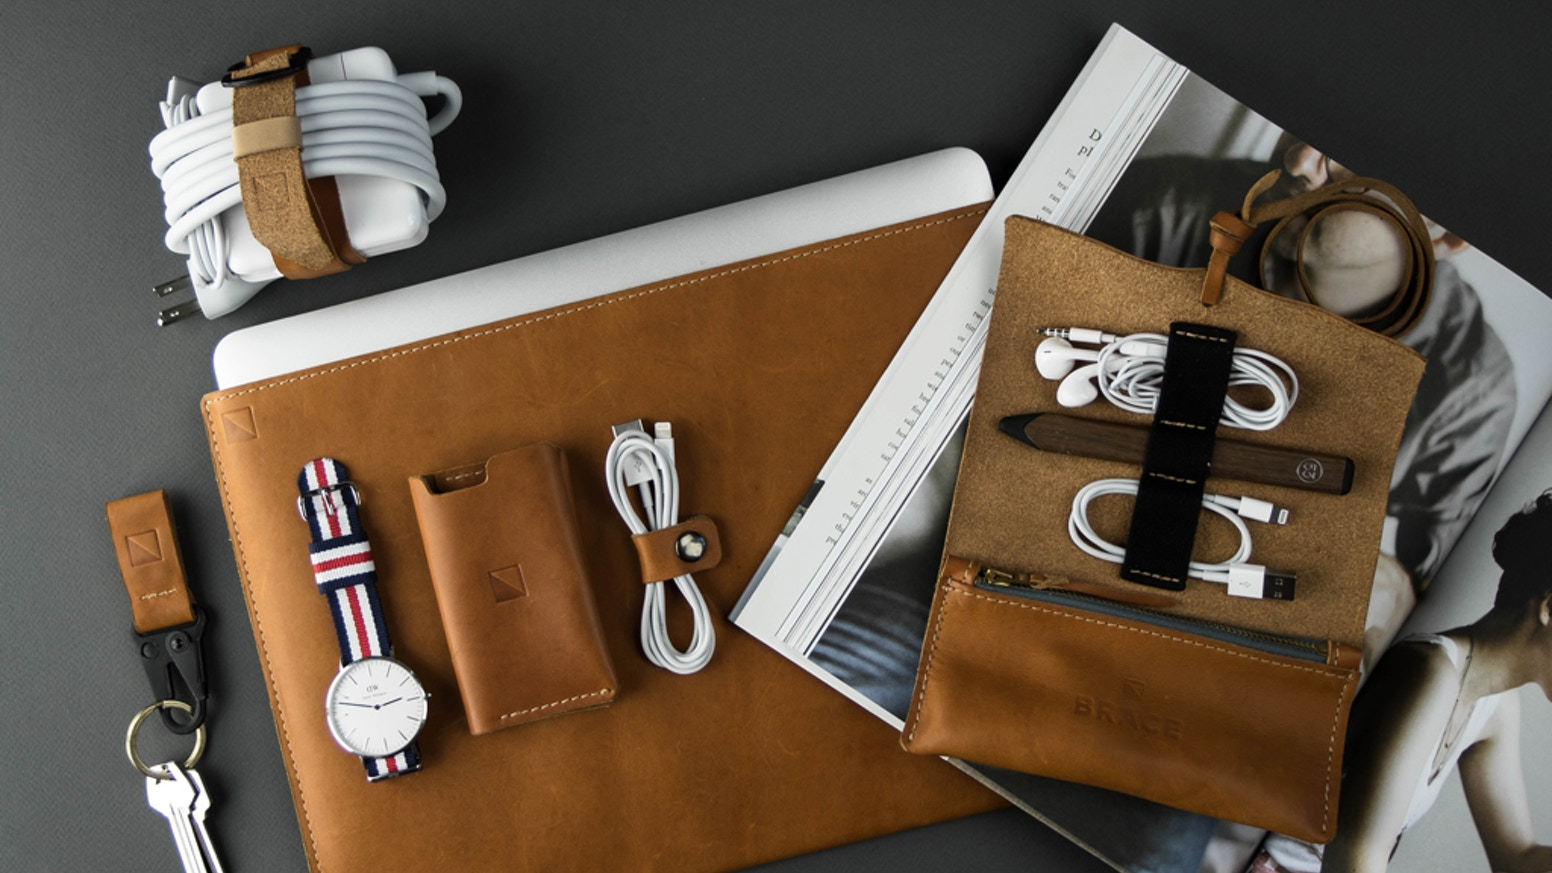 Our beautiful leather accessories are the essentials you need for life's everyday adventures